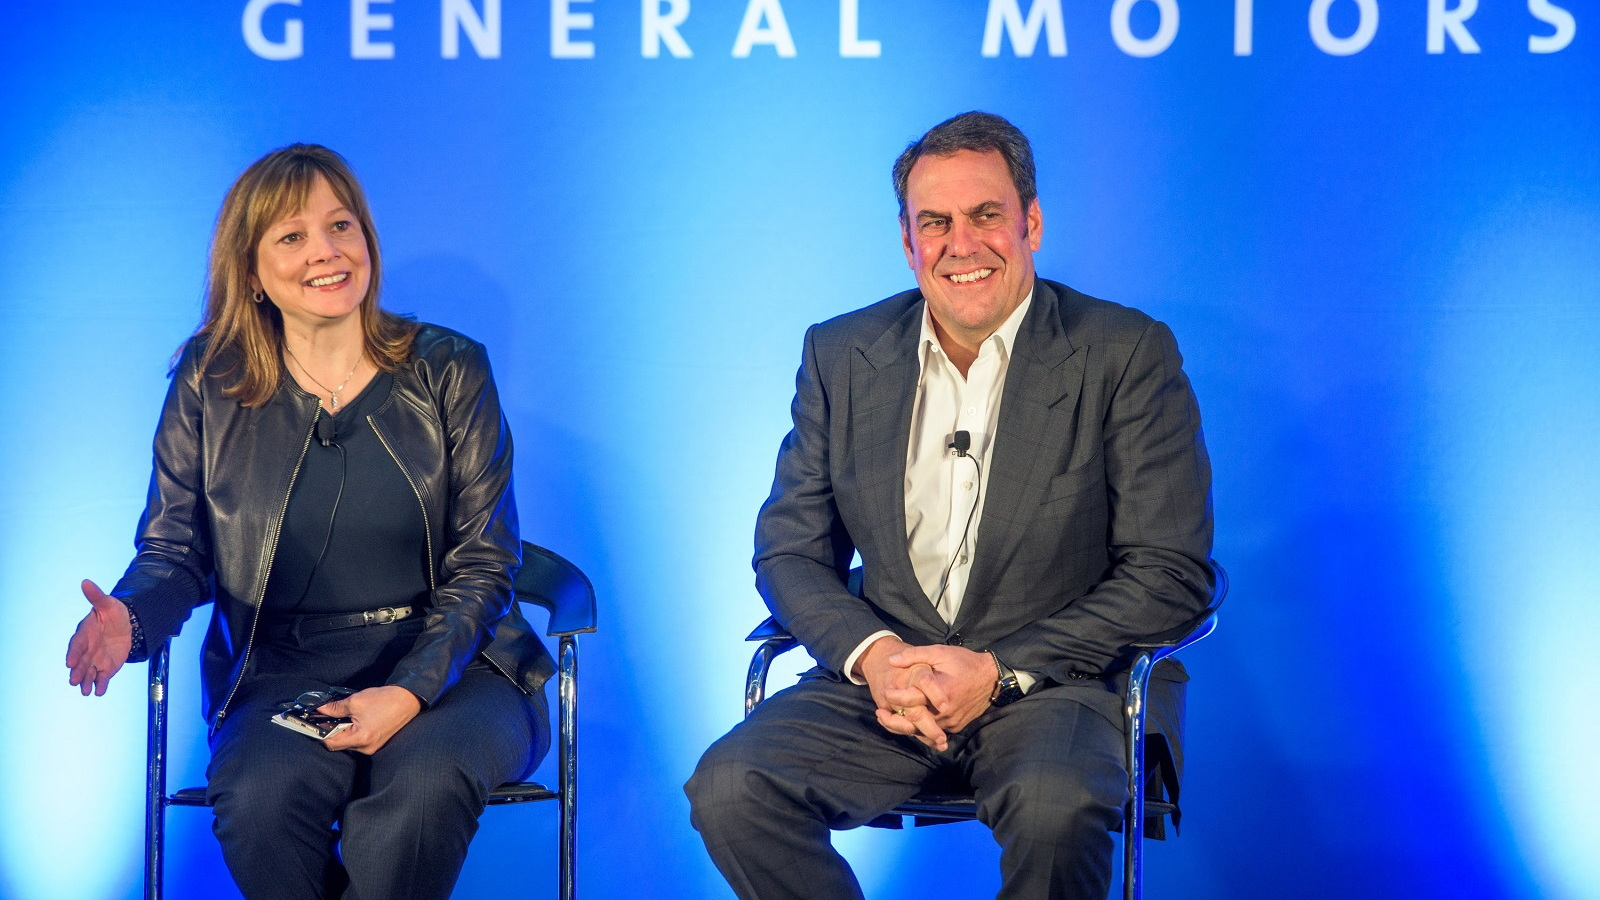 General Motors CEO Mary Barra and GM Executive Vice President Mark Reuss